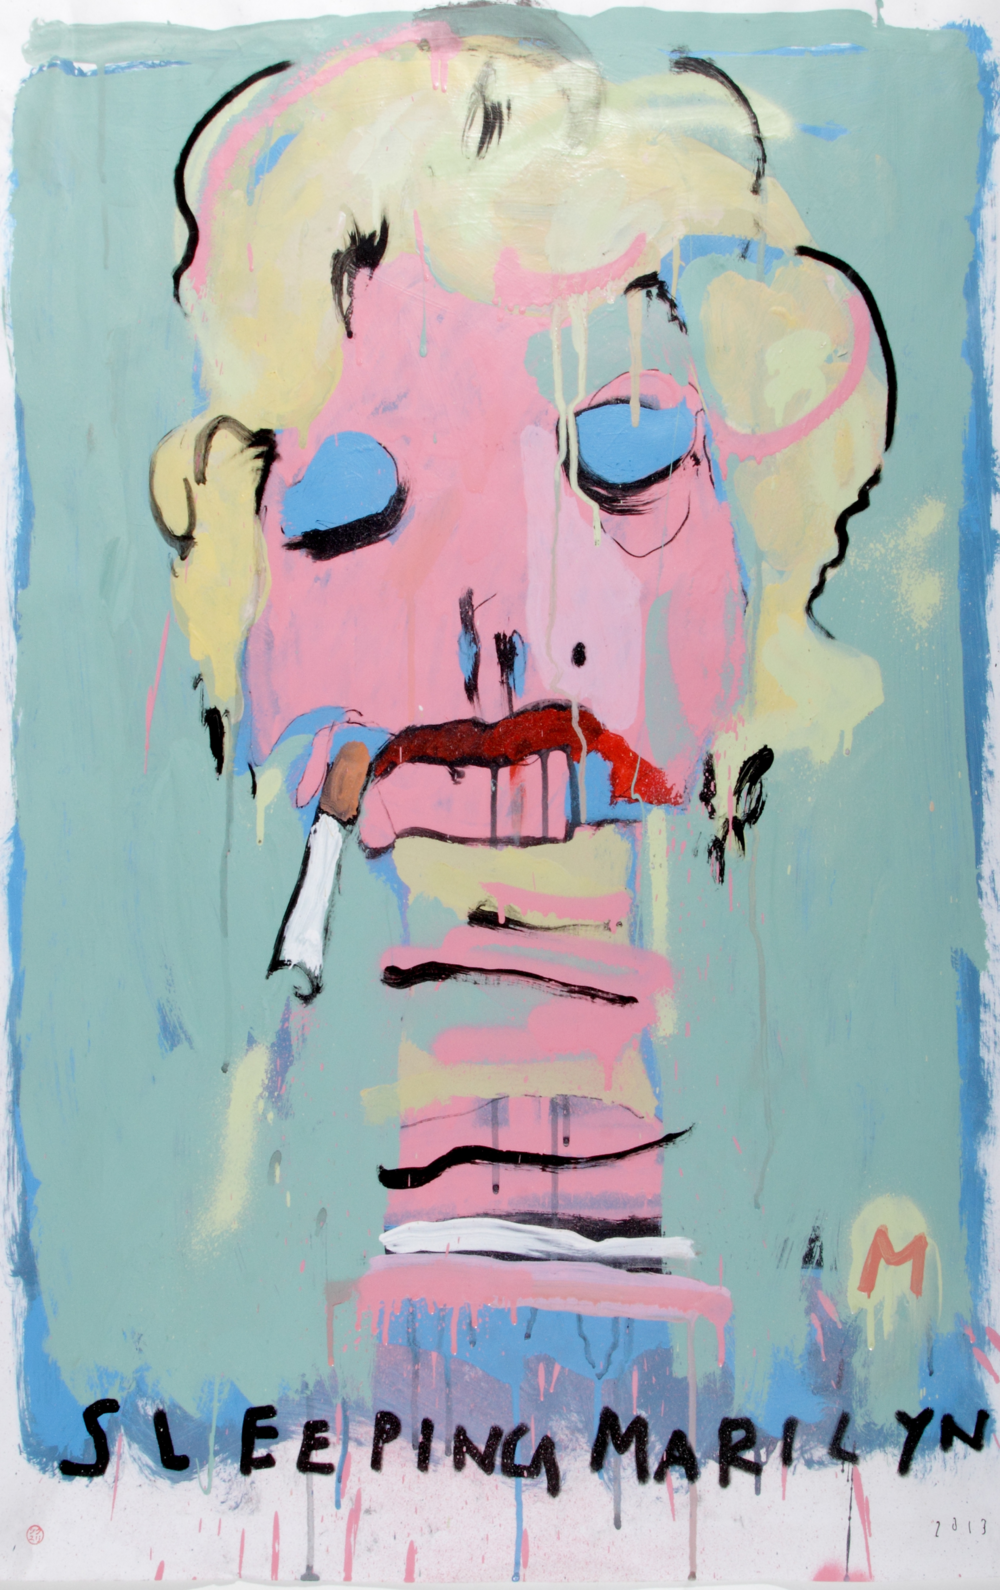 Sleeping Mariyln, 2014  [private collection LA, CA] Acrylic on paper 32 x 23 1/2 in.